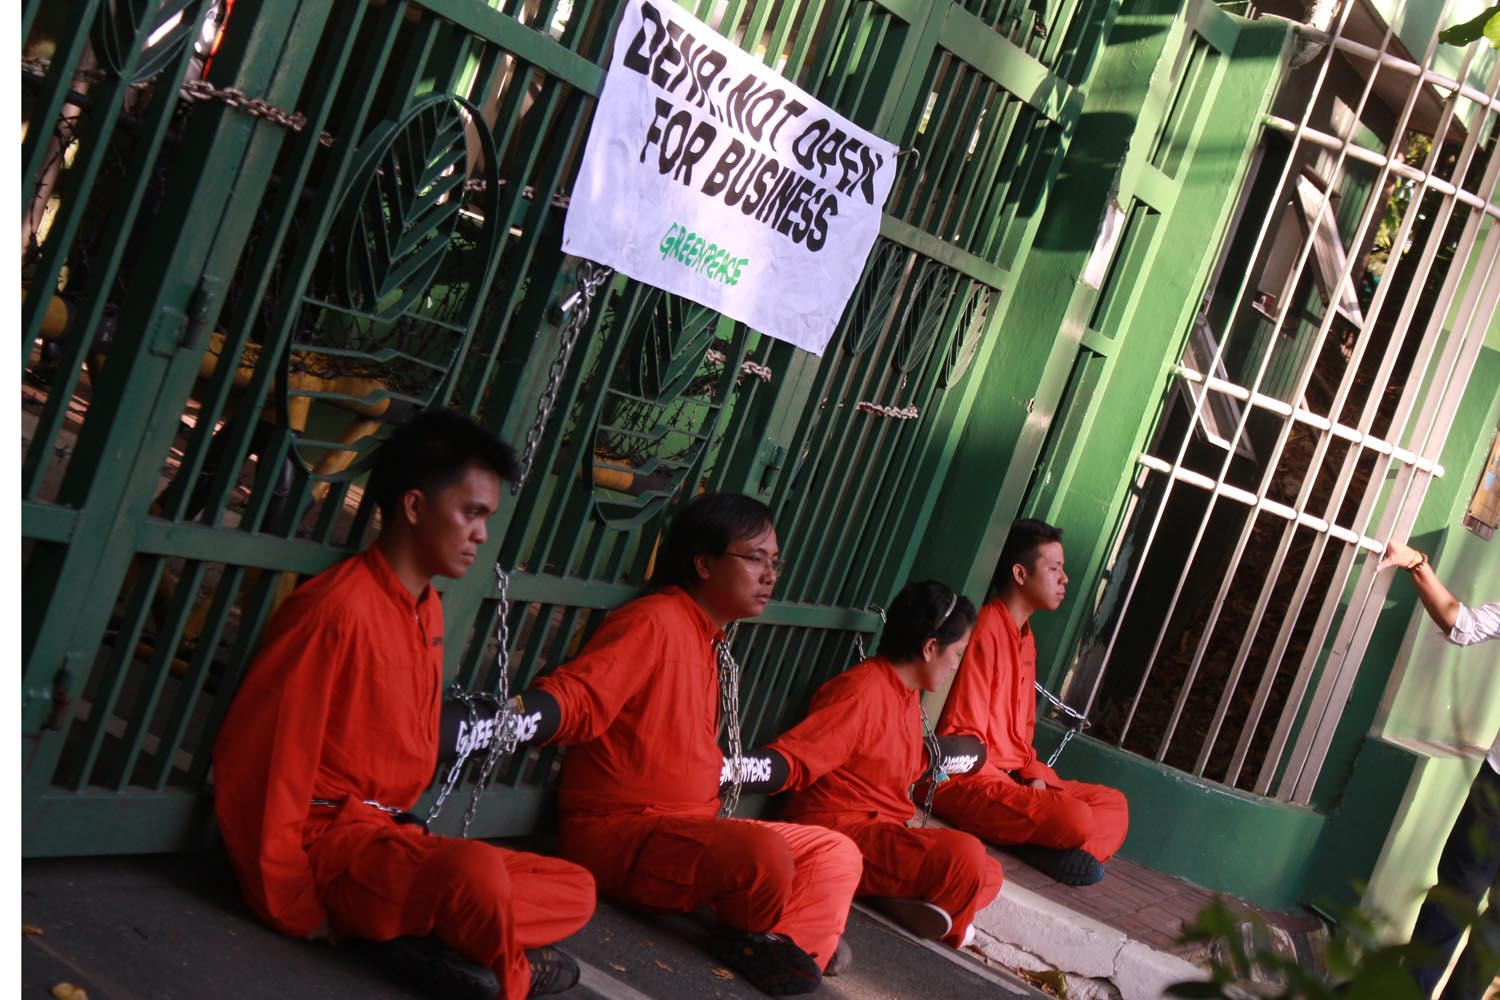 NOT OPEN. ActivistS from Greenpeace Philippines protest at the gates of the Department of Environment and Natural Resources office in Quezon City. Photo by: DARREN LANGIT/RAPPLER